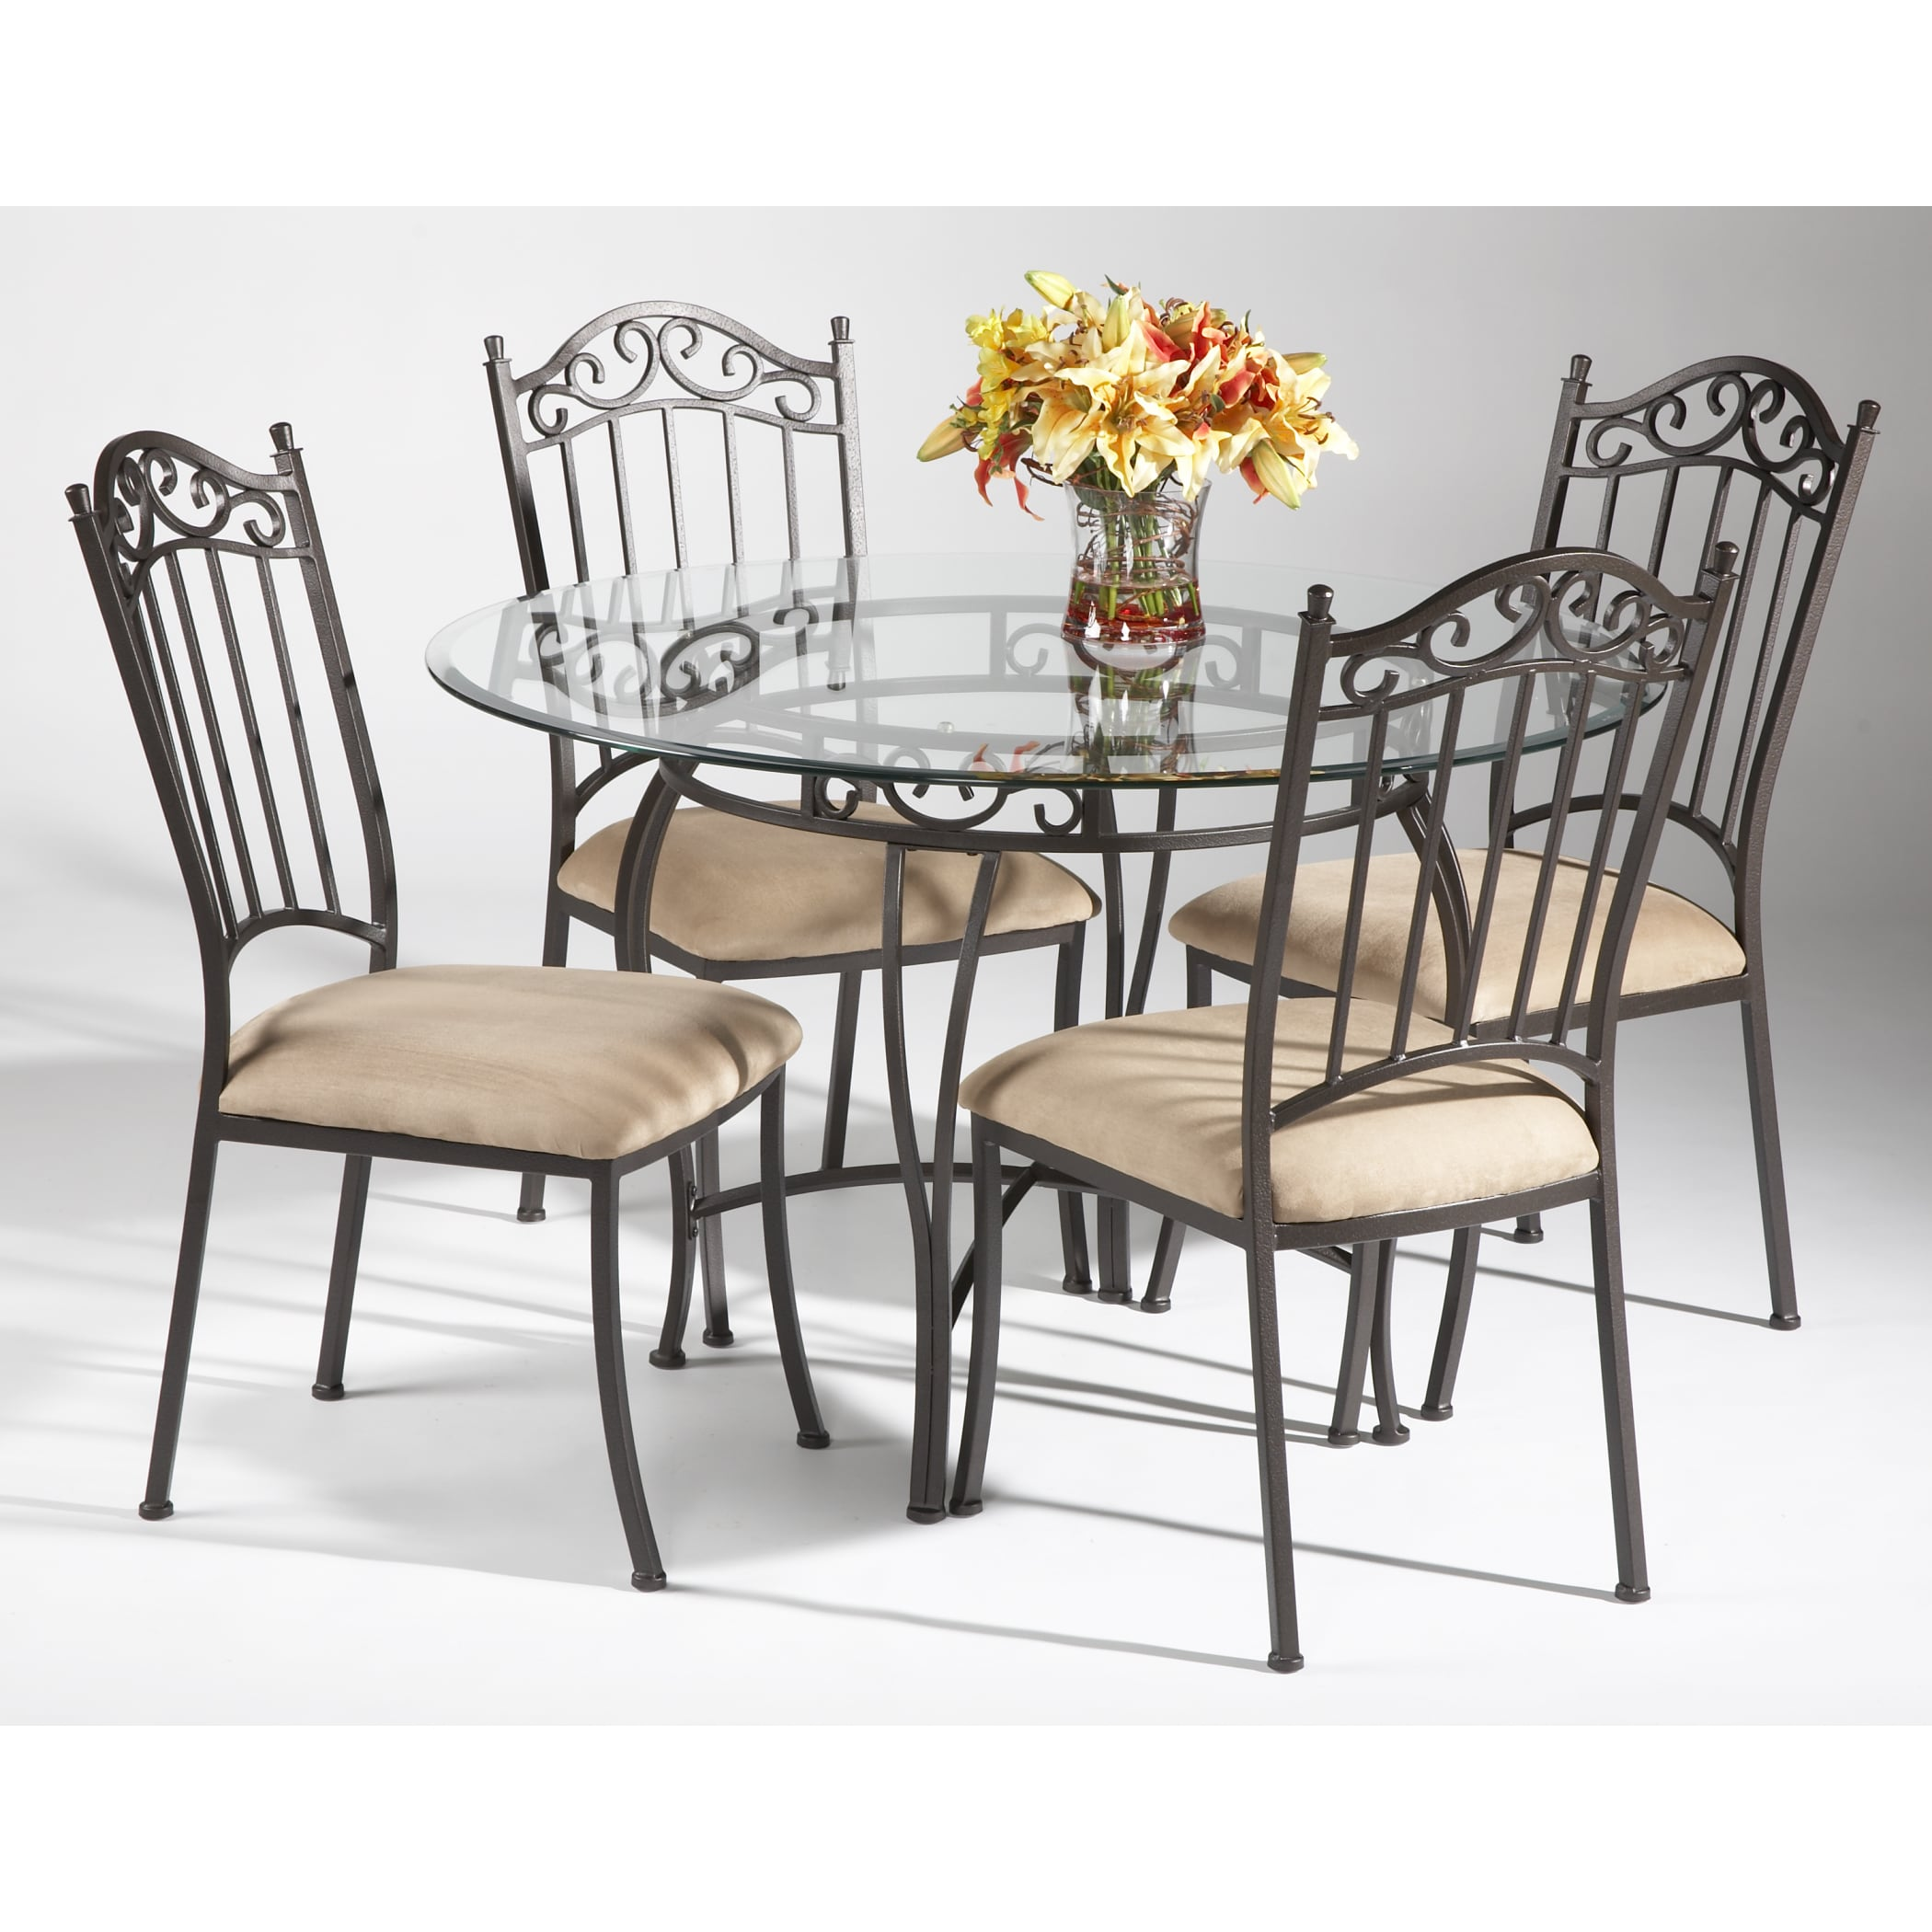 45911d5a64ab Shop Somette Round Wrought Iron Glass Top Dining Table - Free Shipping  Today - Overstock - 9054265